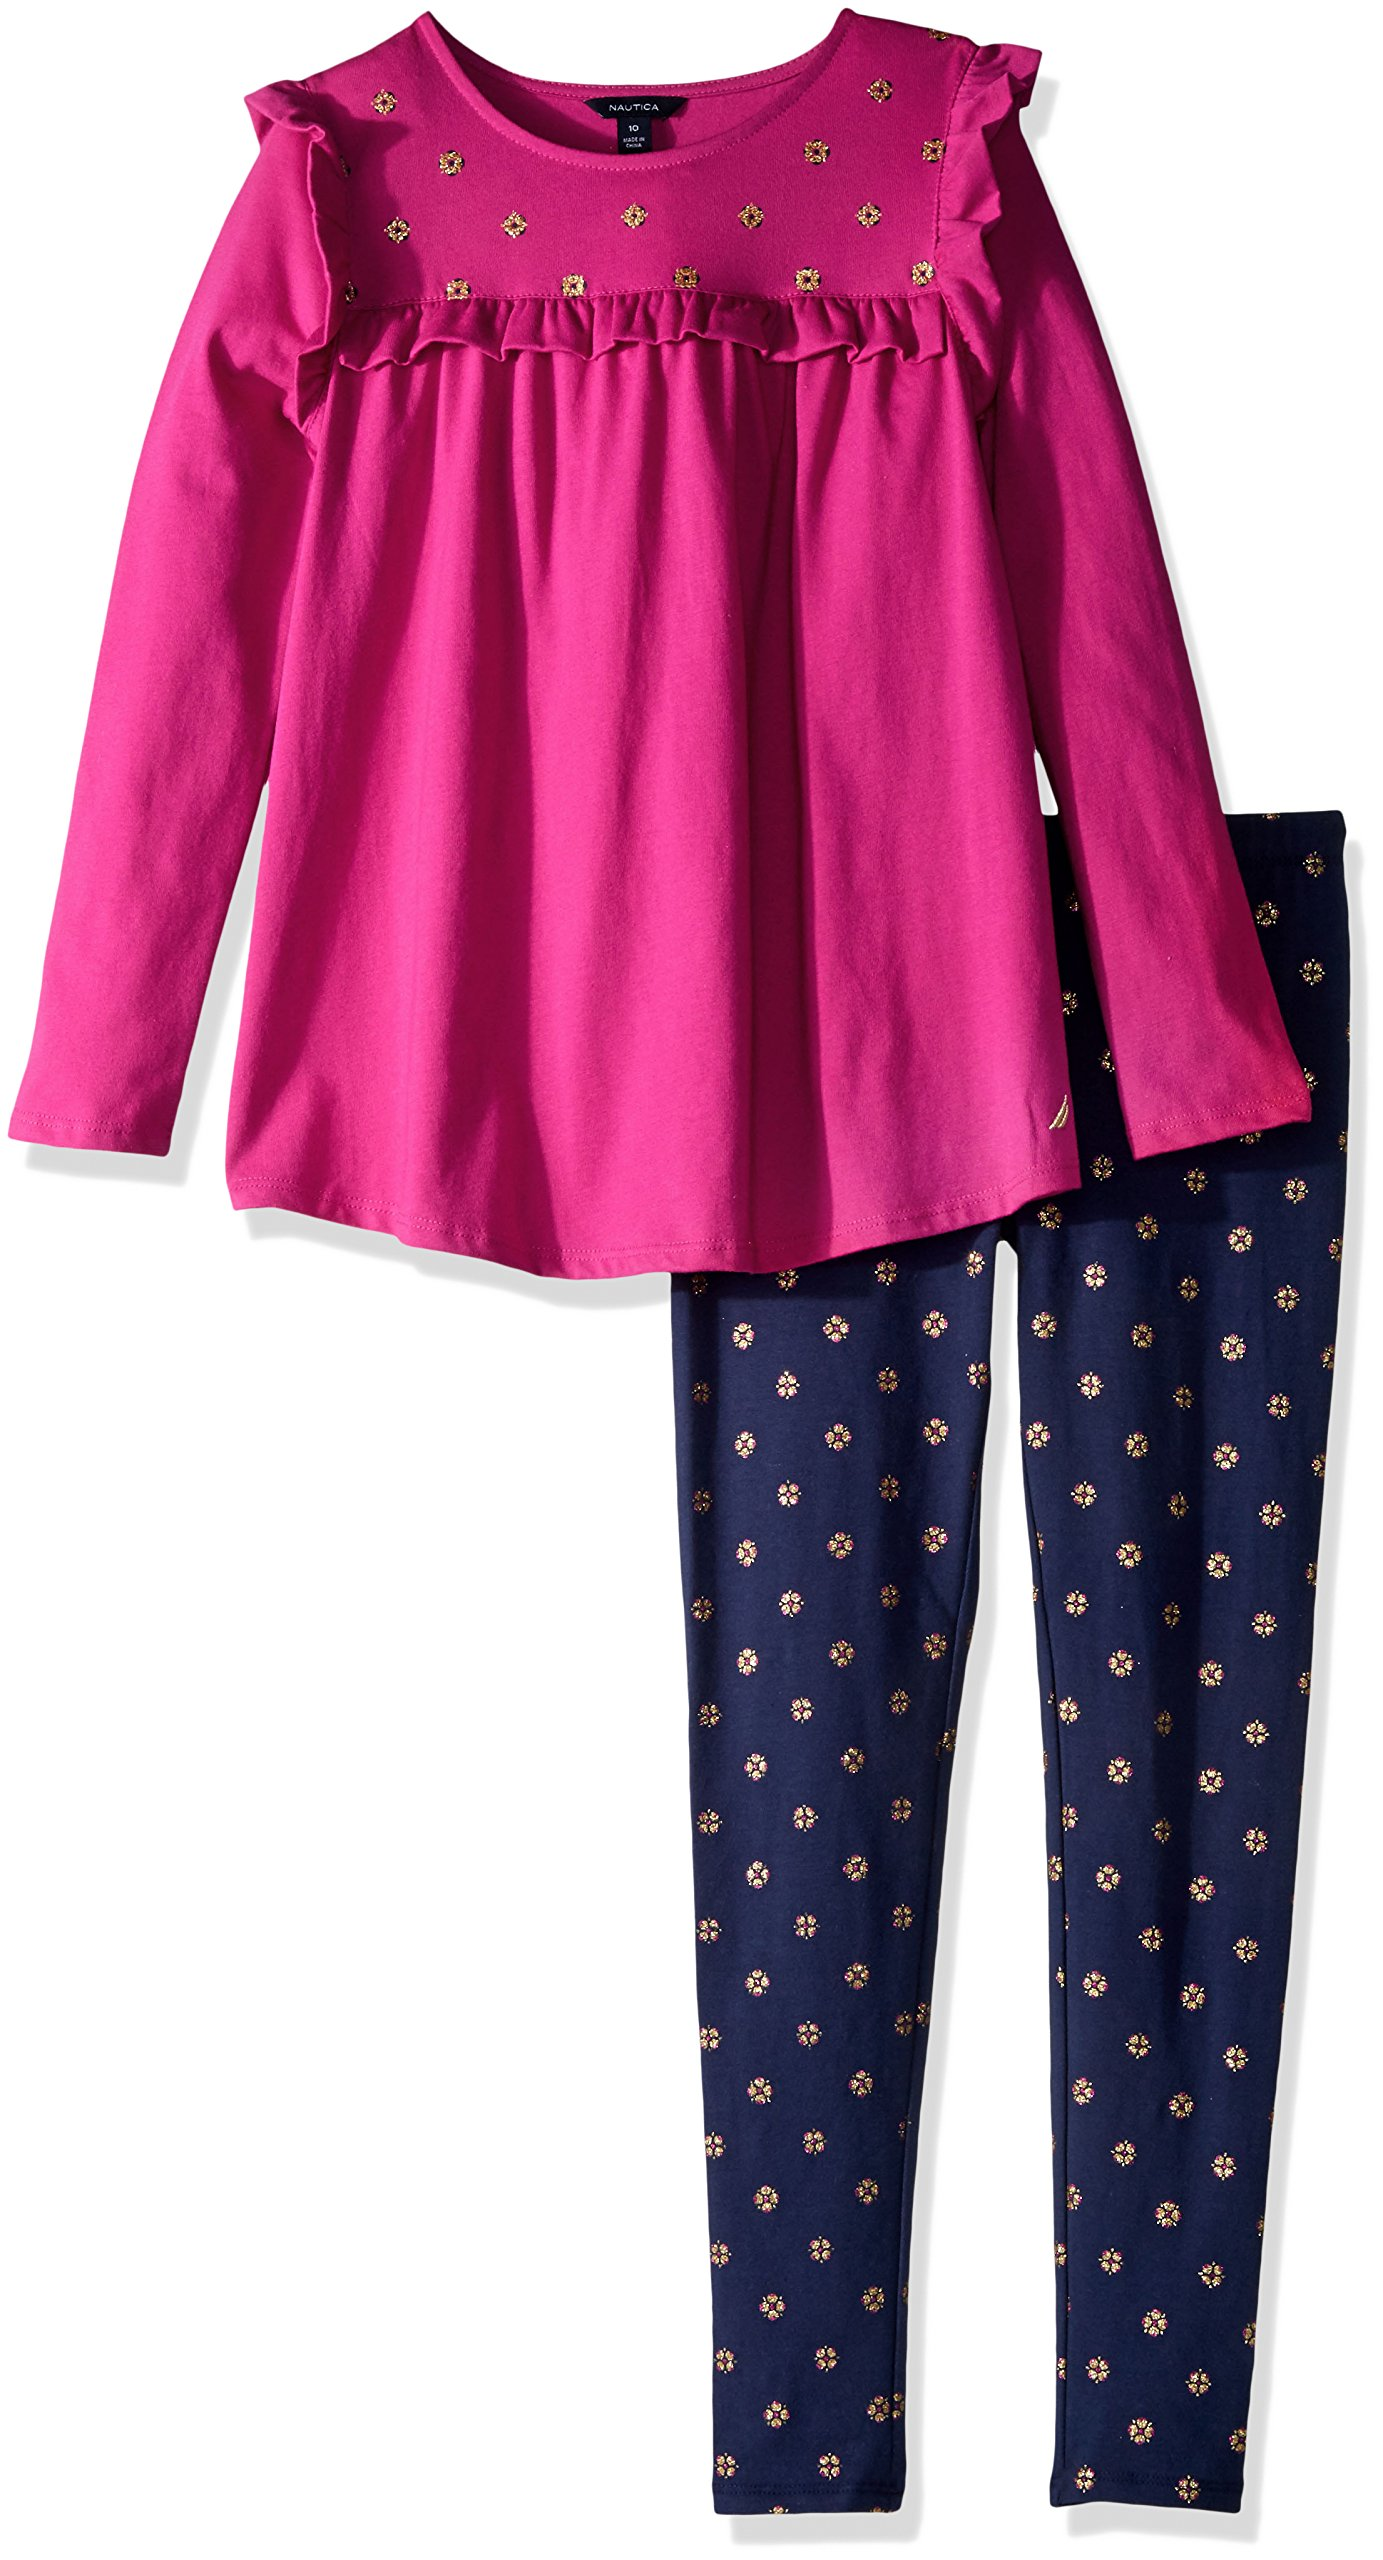 Nautica Big Girls' Two Piece Long Sleeve Legging Sets, Dark Pink, 10